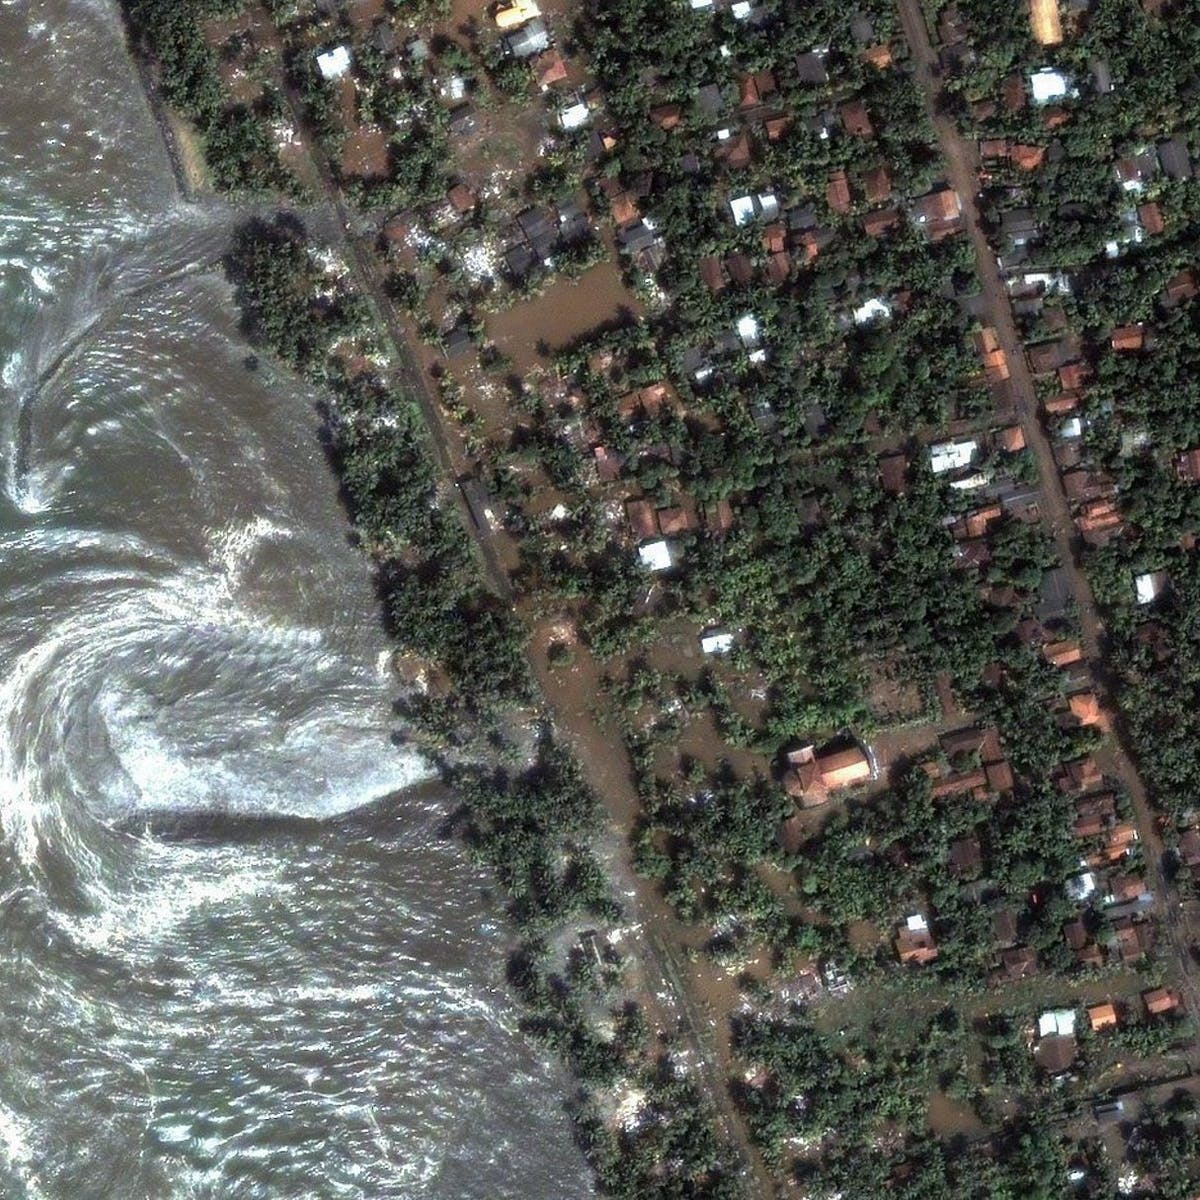 Making waves: the tsunami risk in Australia